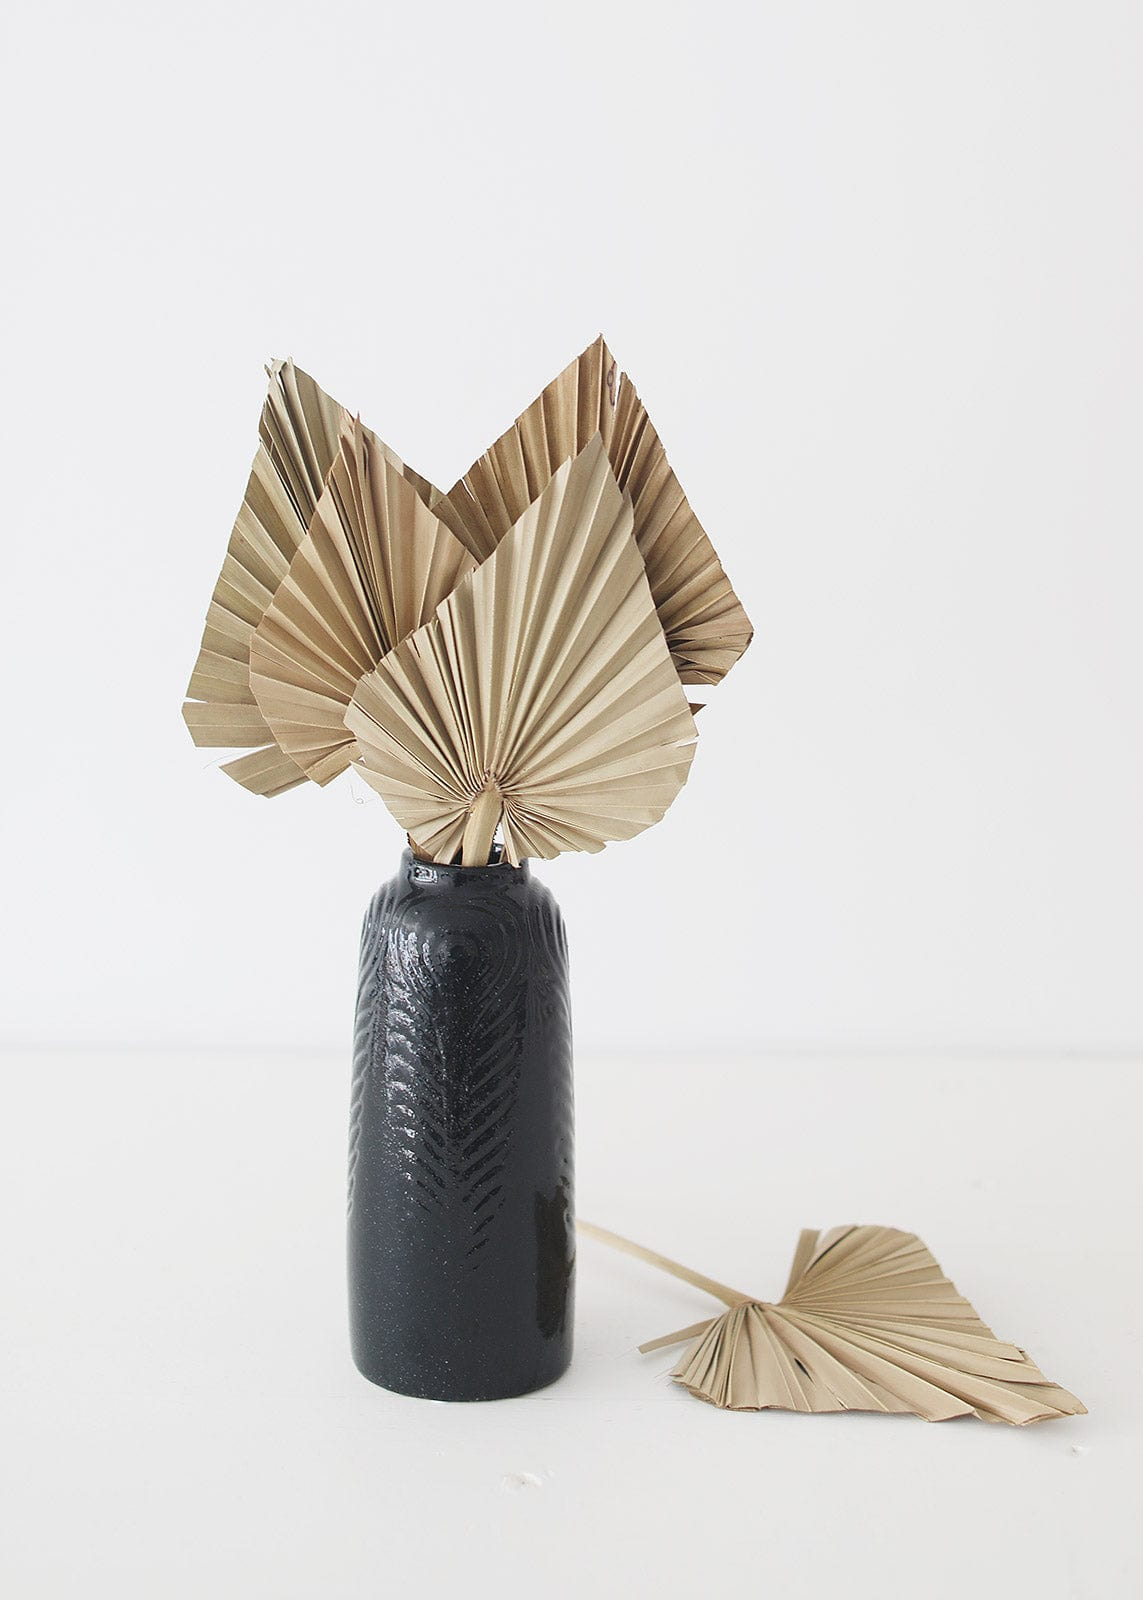 Dried Palm Spears Simple Styled in Black Vase